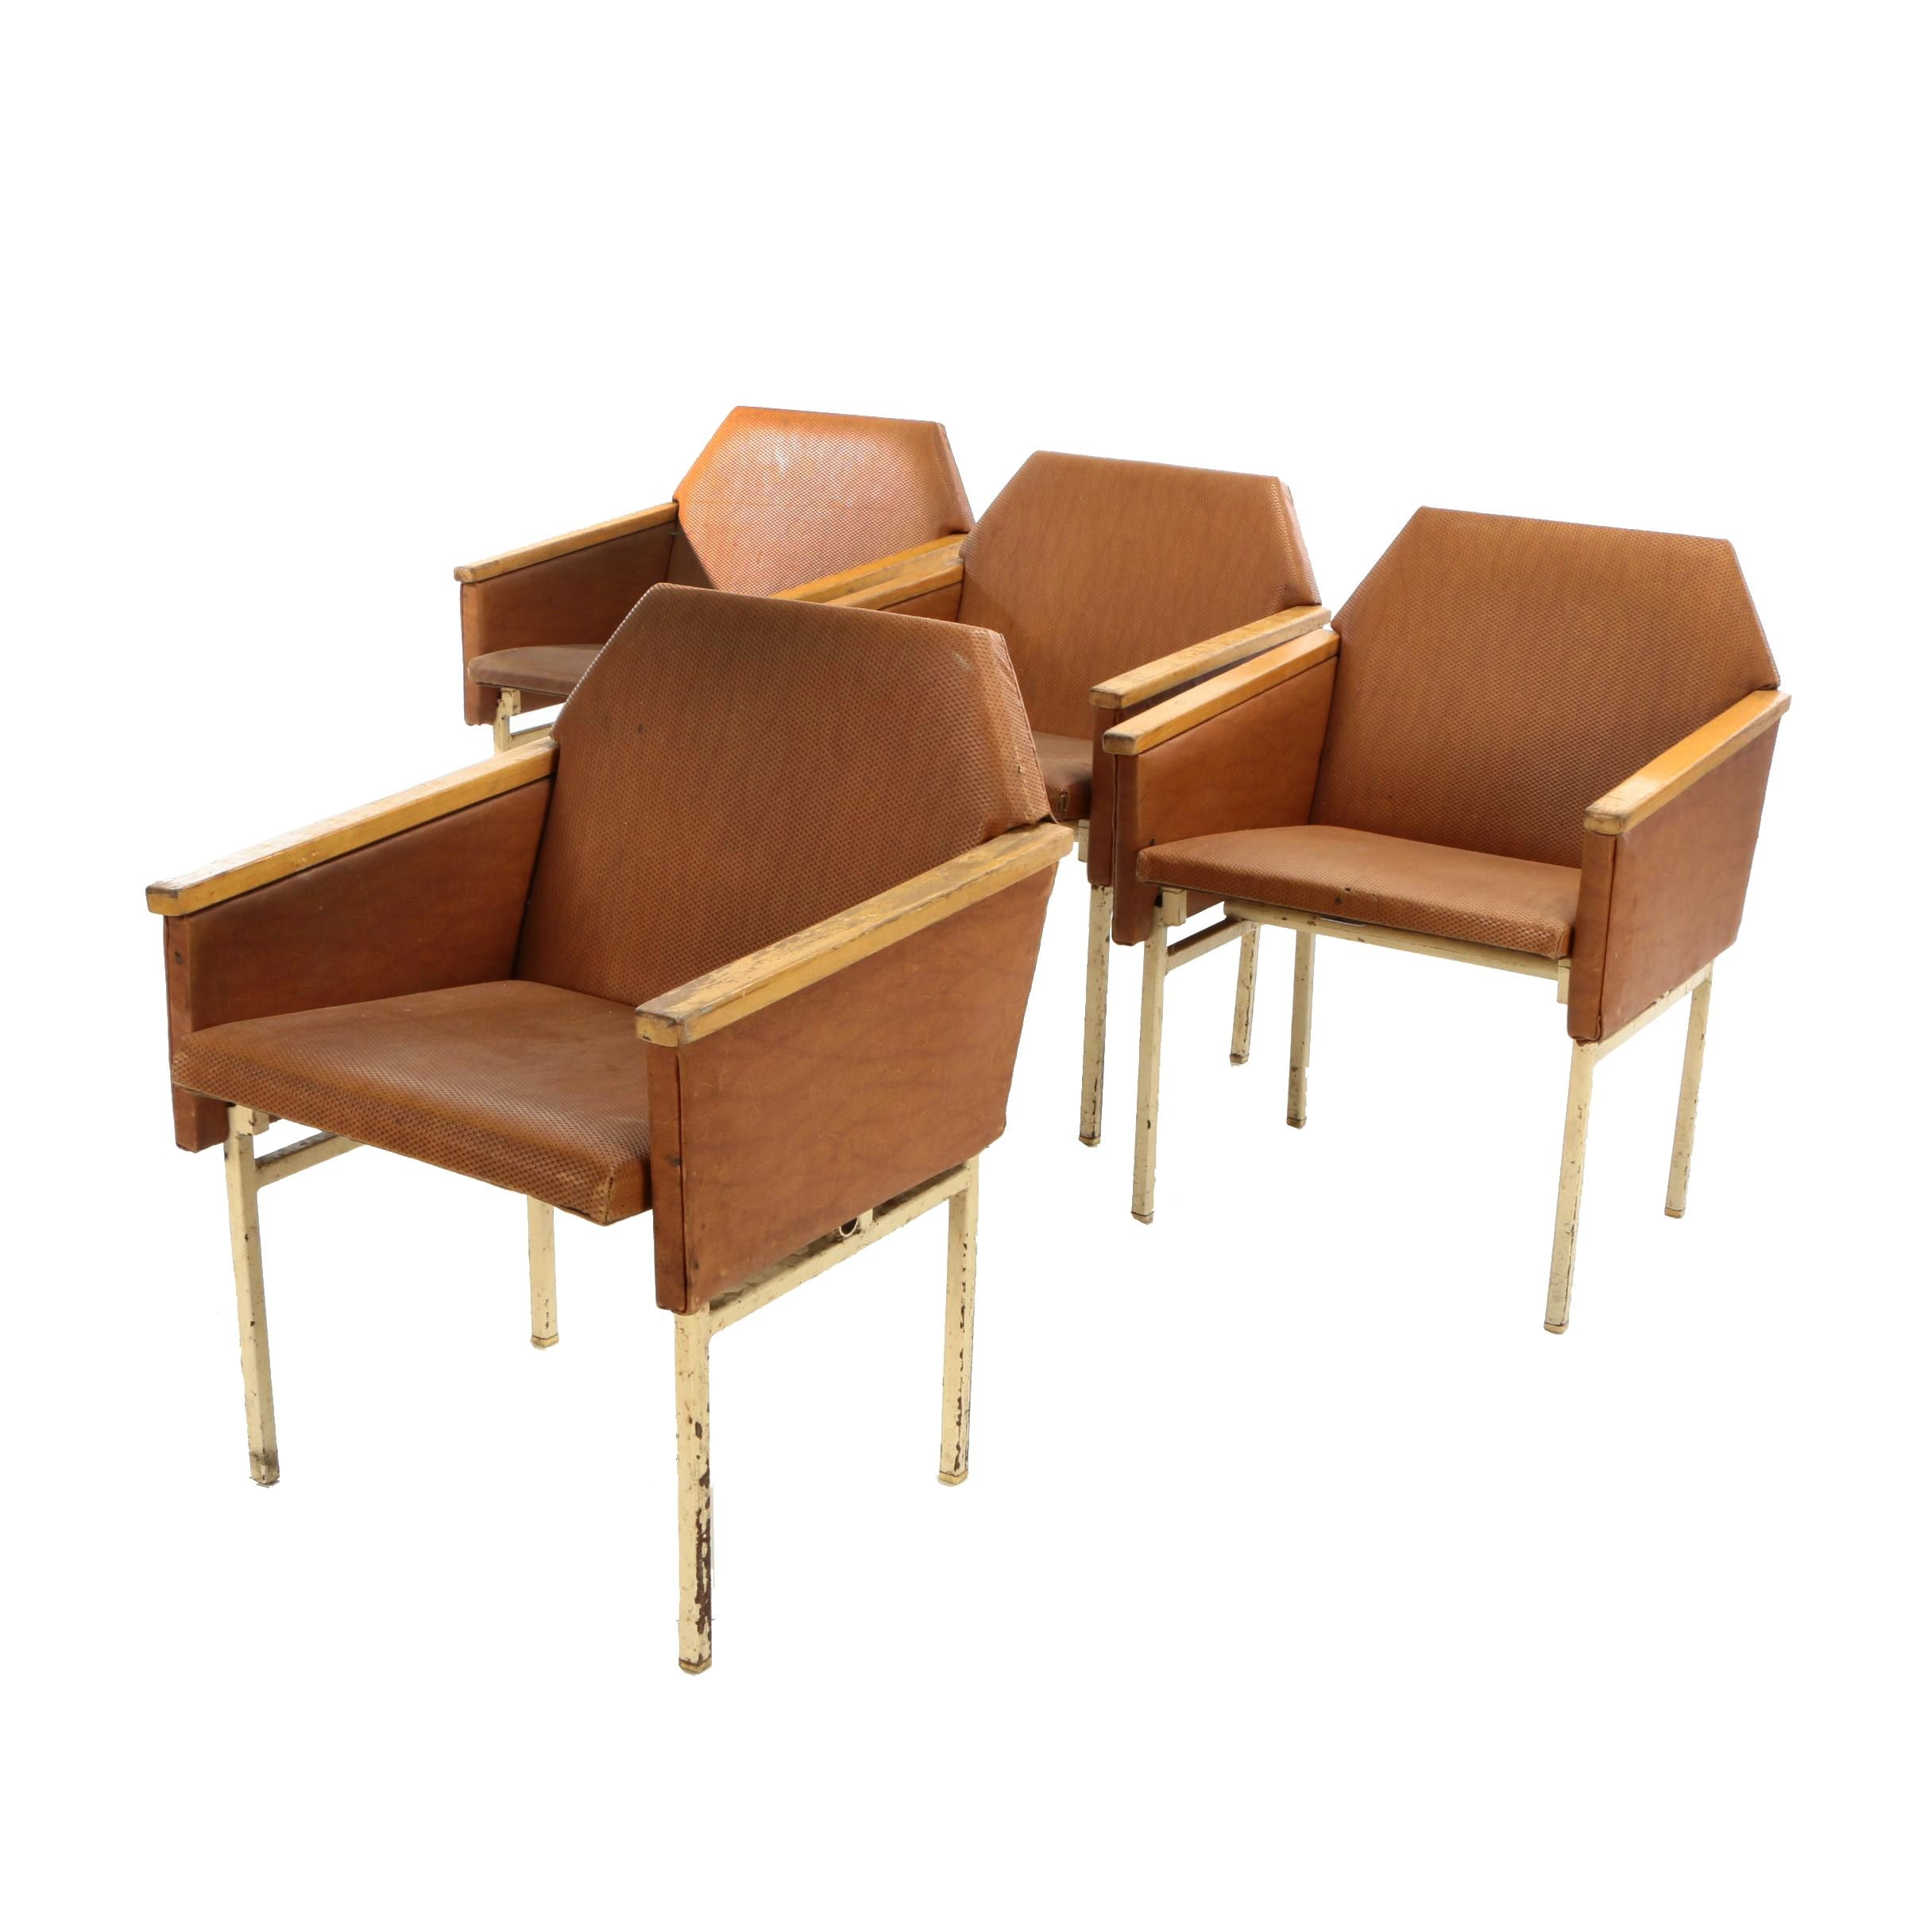 Metal and Wood Frame Upholstered Theater Seats, Mid-20th Century